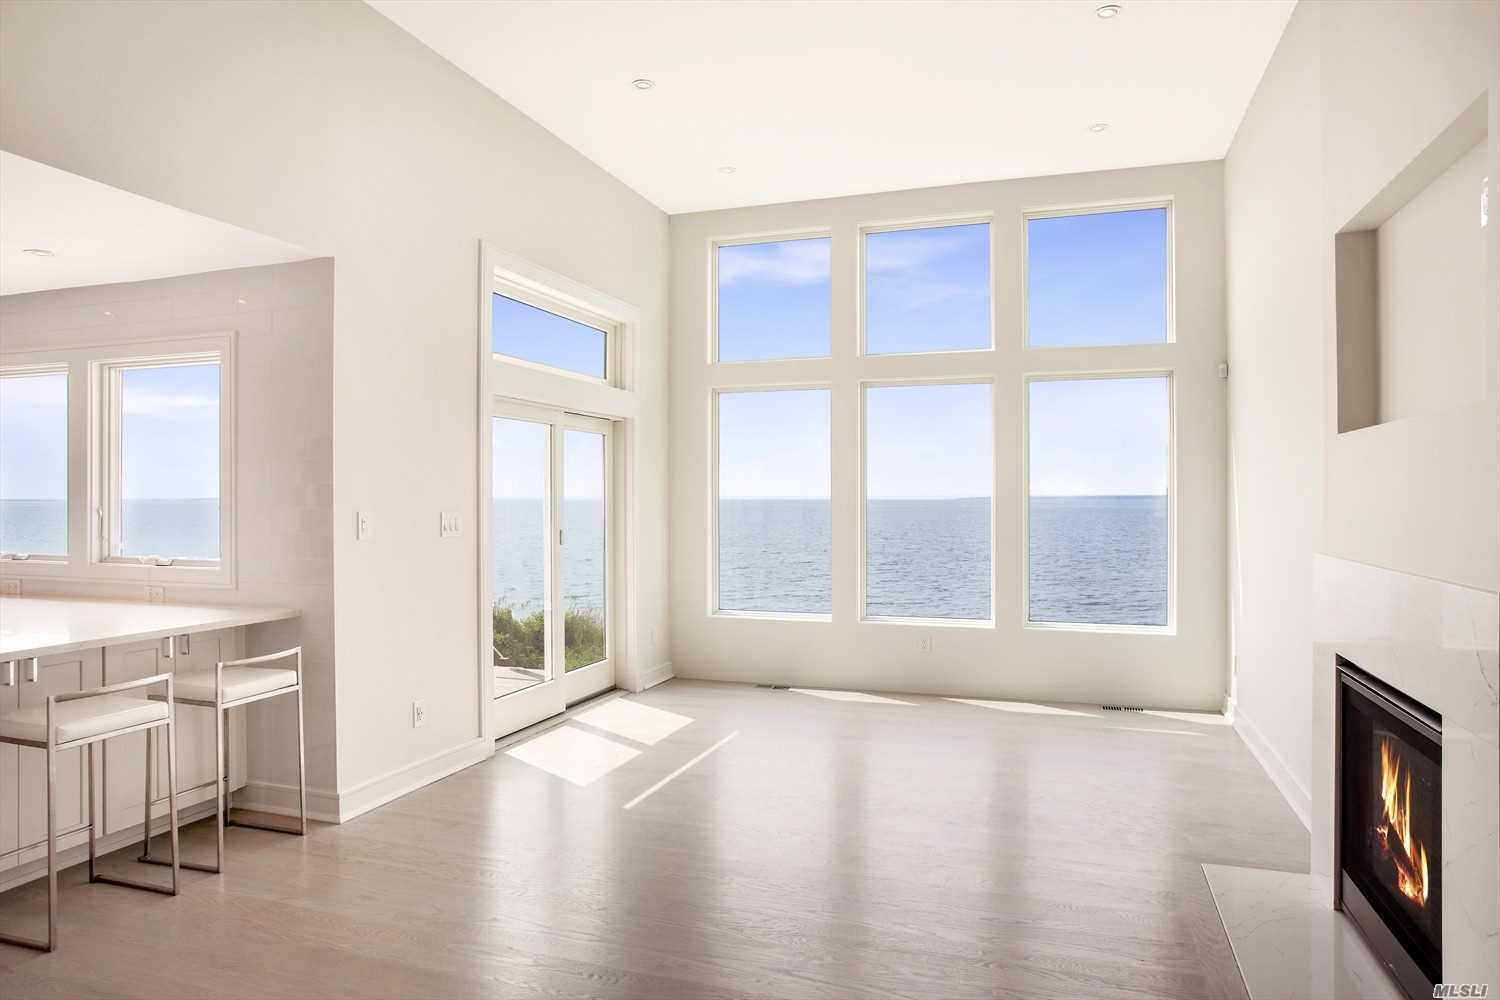 Once You Step Foot On This Newly Constructed Property You Will Be Enveloped In Modern Luxury With Endless Water Views Of The Bay And Ocean!! This 3 Bedroom Beach House Or Year Round House With Your Very Own Private Beach Offers Mesmerizing Sunset Views And Affords You Direct Access For Your Boat And Jet Skis. Quality Craftsmanship Inside And Out!! Built To Fema And Limwa Standards.  Truly A Dream Home!!